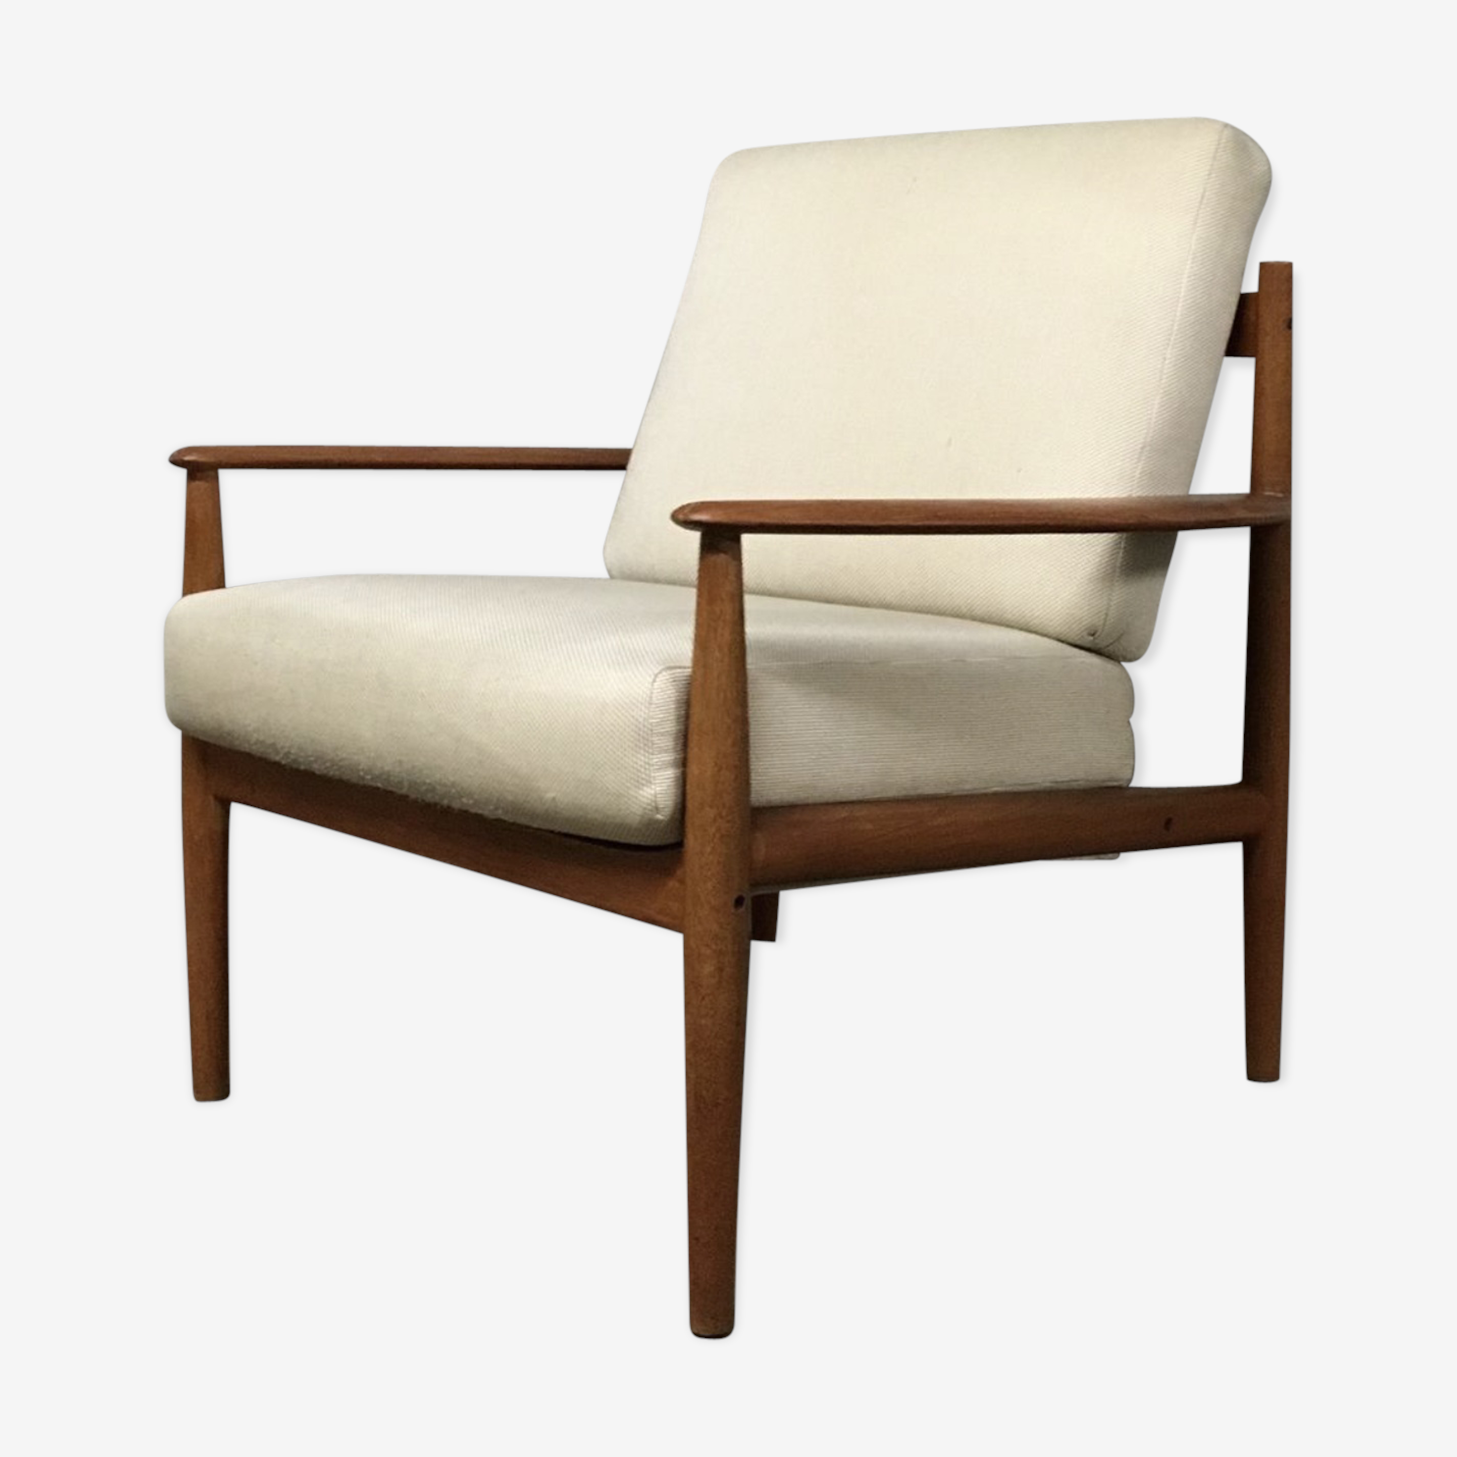 Danish mid-century 118 armchair by Grete Jalk for France & Son, 1950